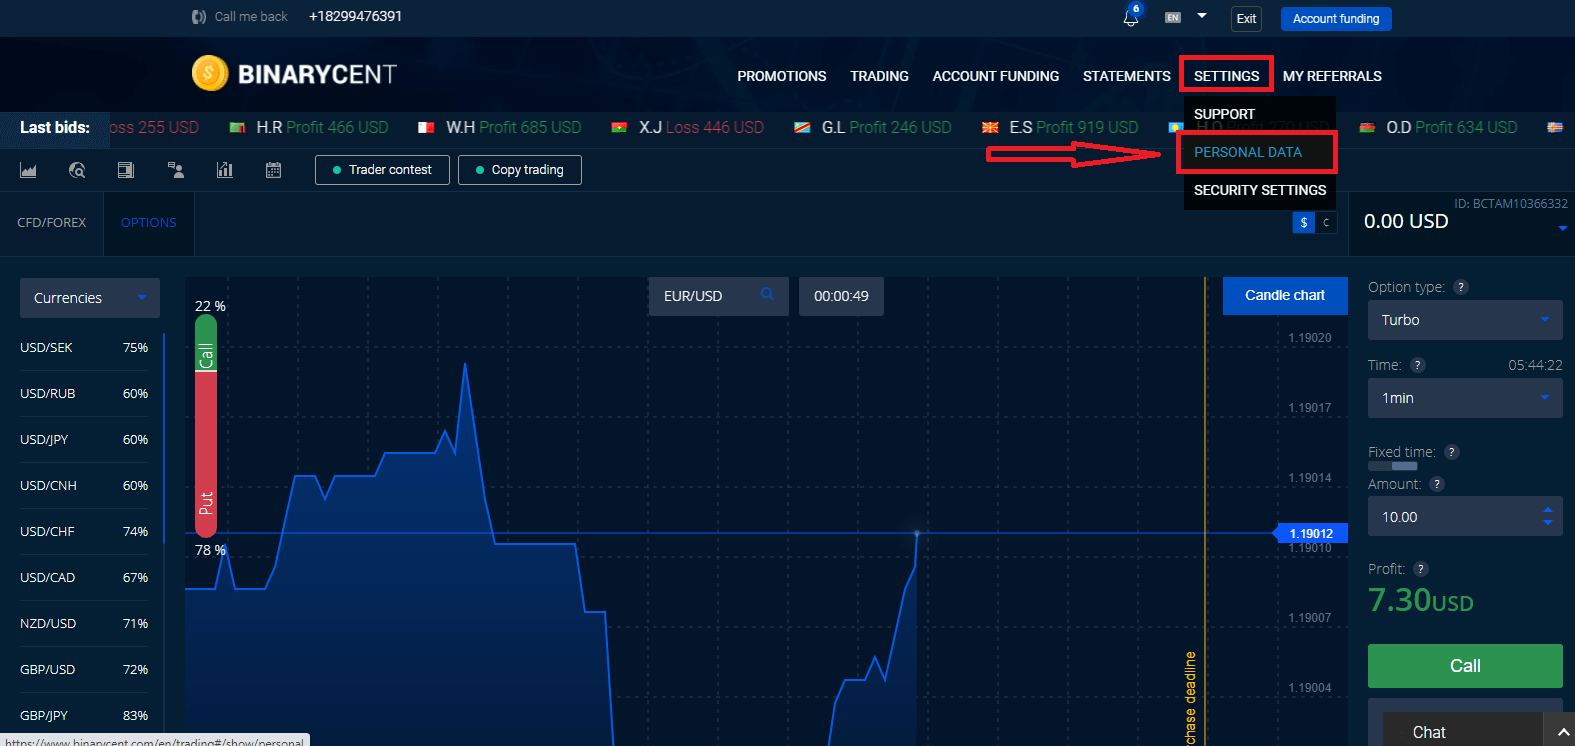 How to Trade at Binarycent for Beginners